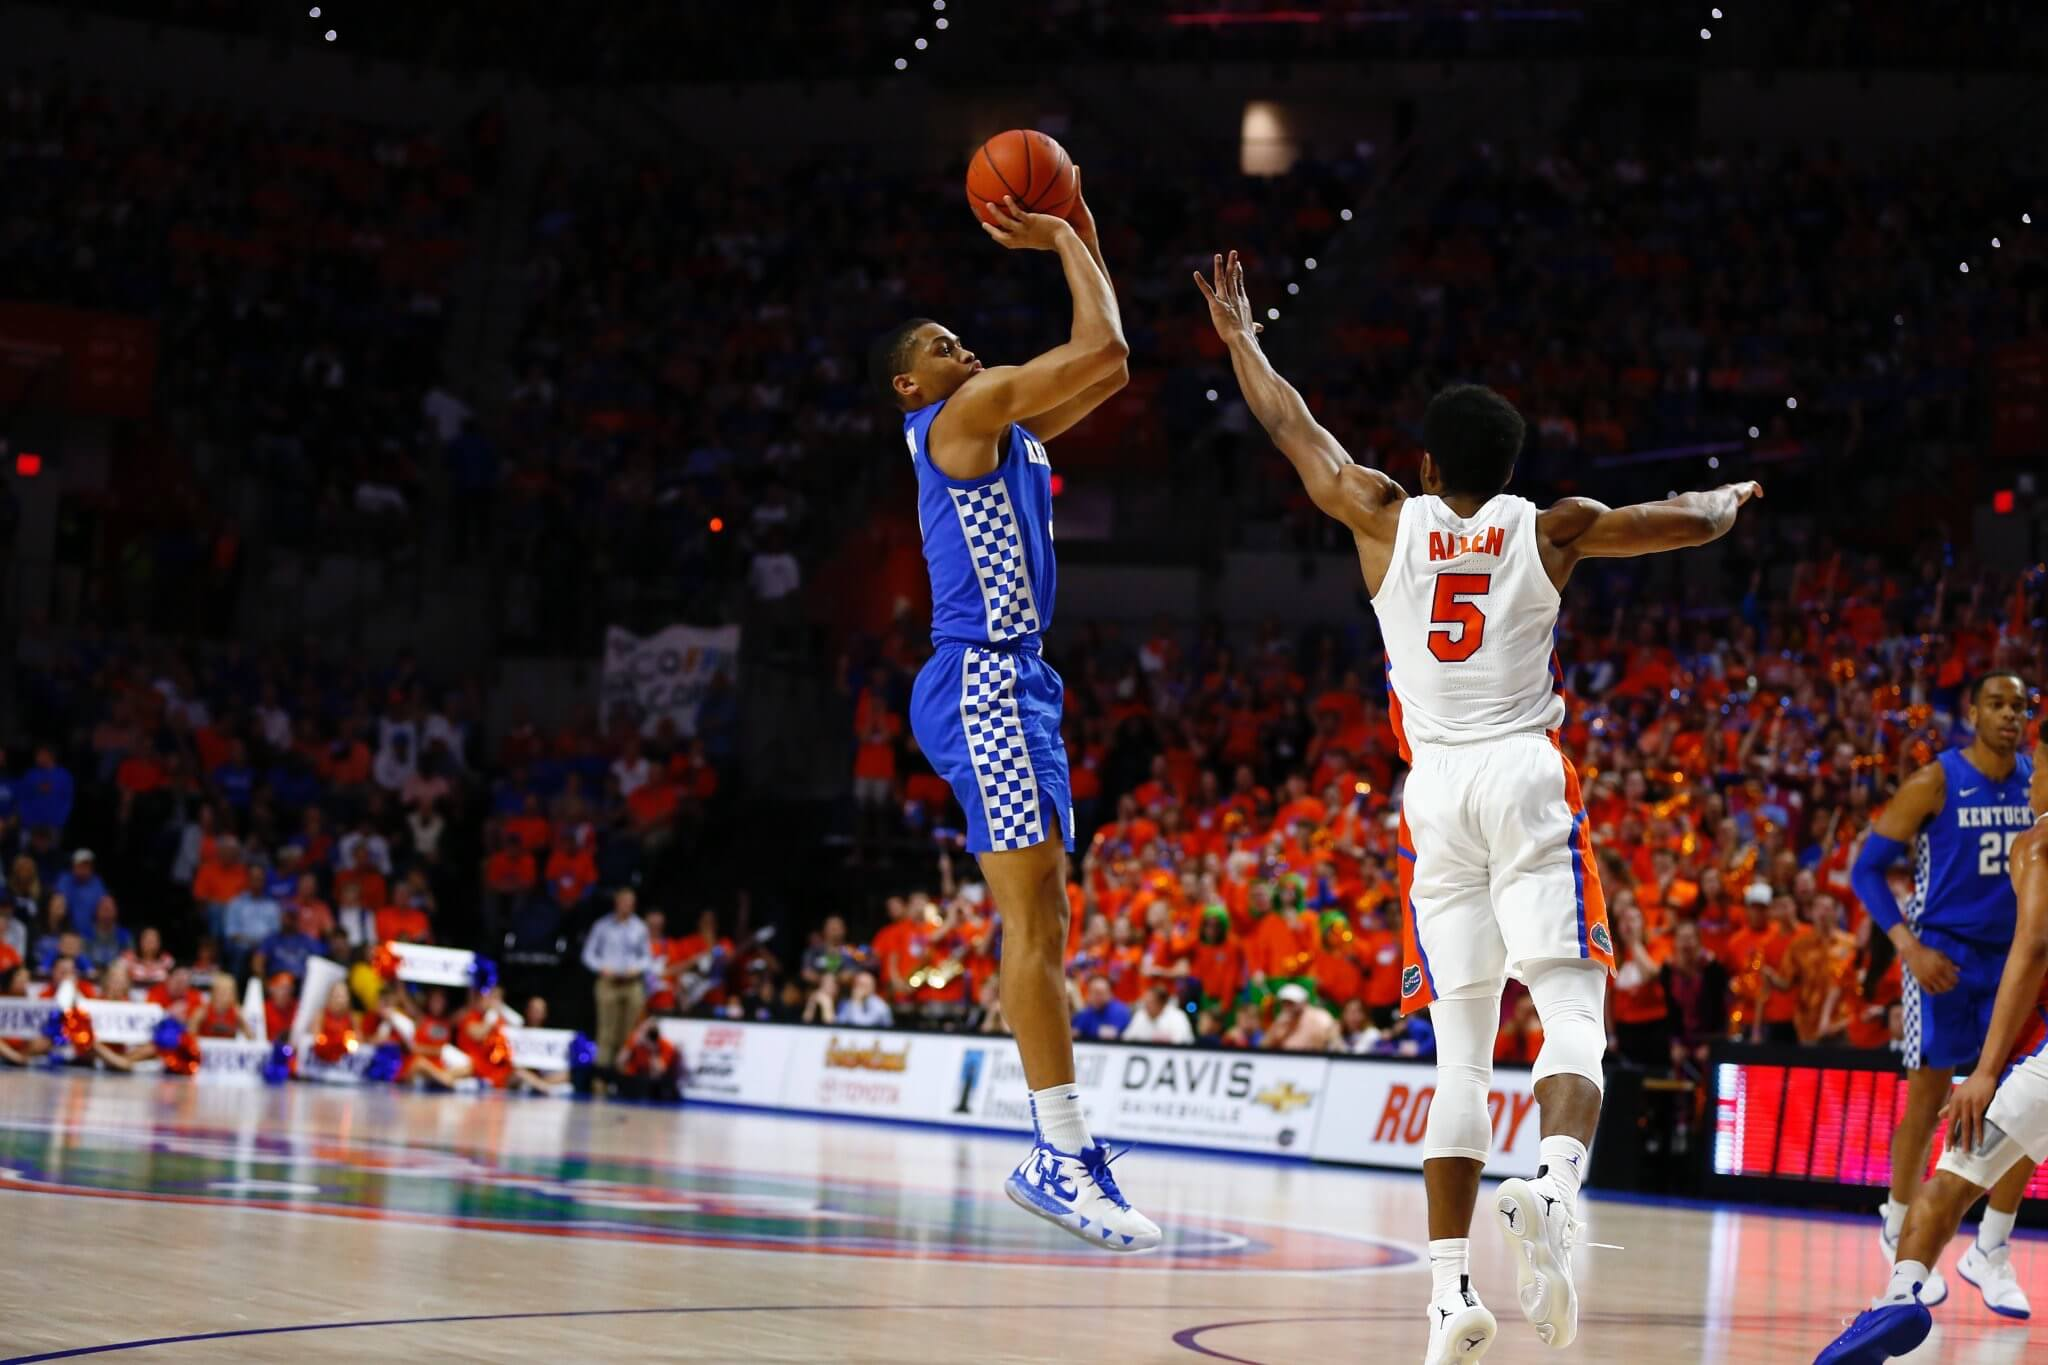 Gators' late game struggles continue with loss to Kentucky ...